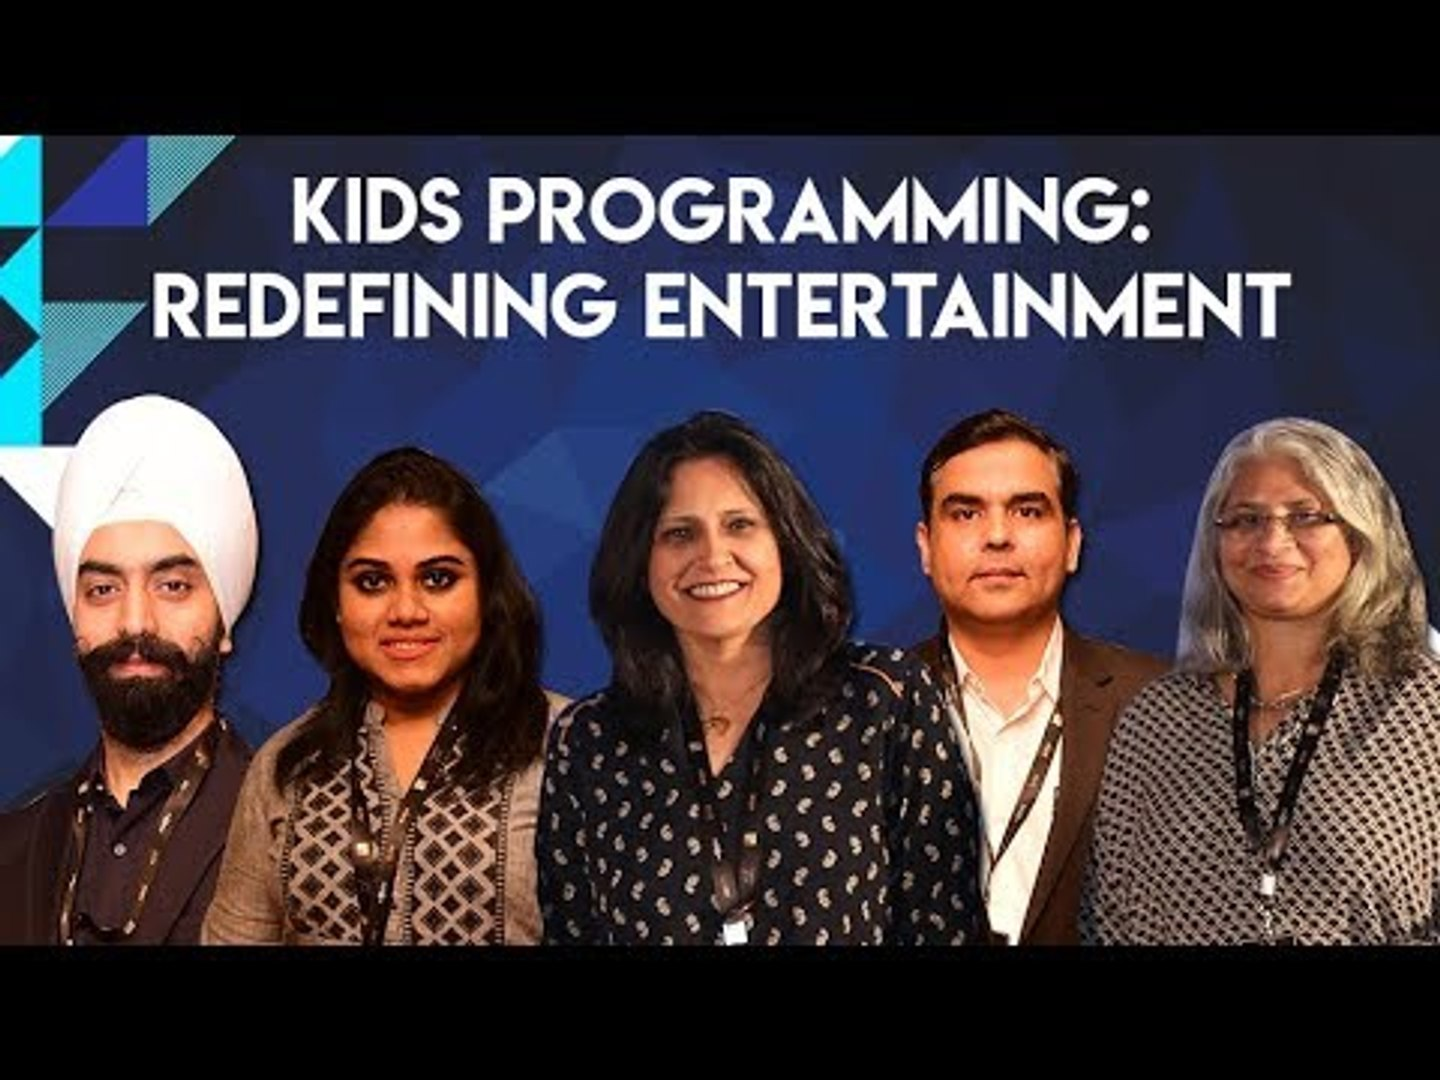 TV-Video Summit and Awards: Session on 'Kids Programming: Redefining Entertainment'